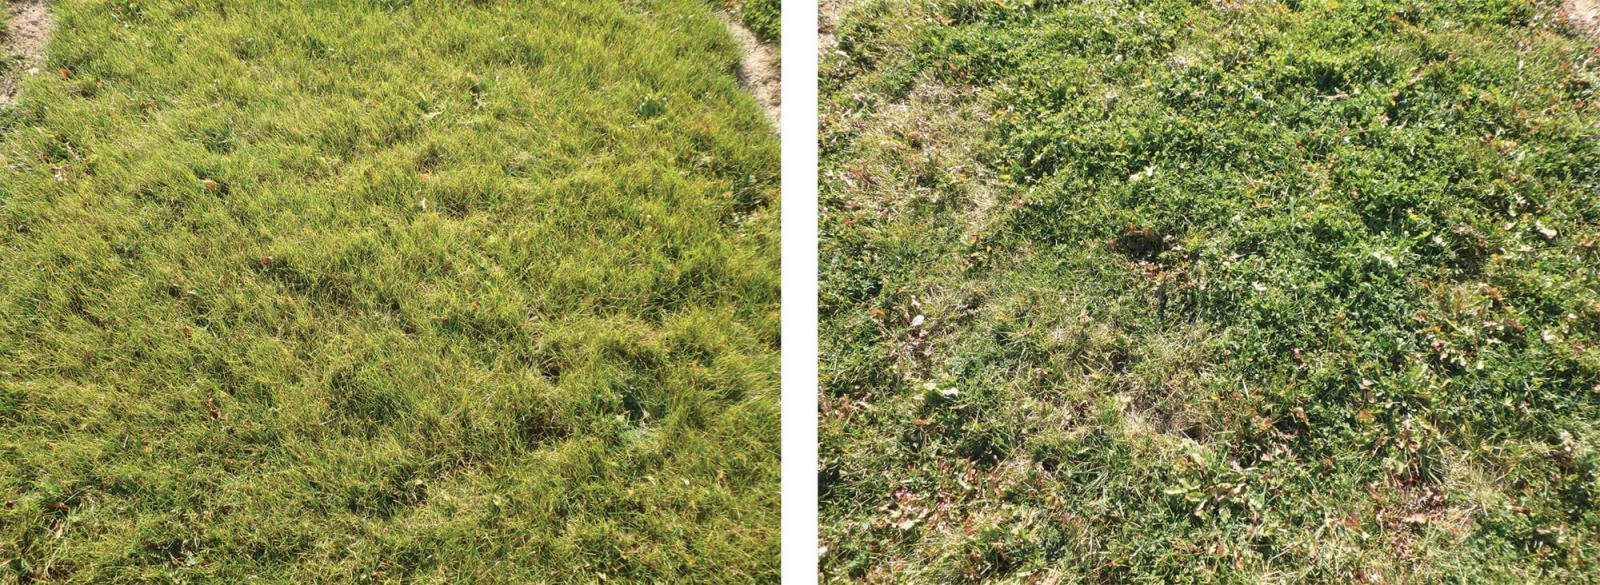 High endophyte-containing ryegrass (left) and Kentucky bluegrass (right).